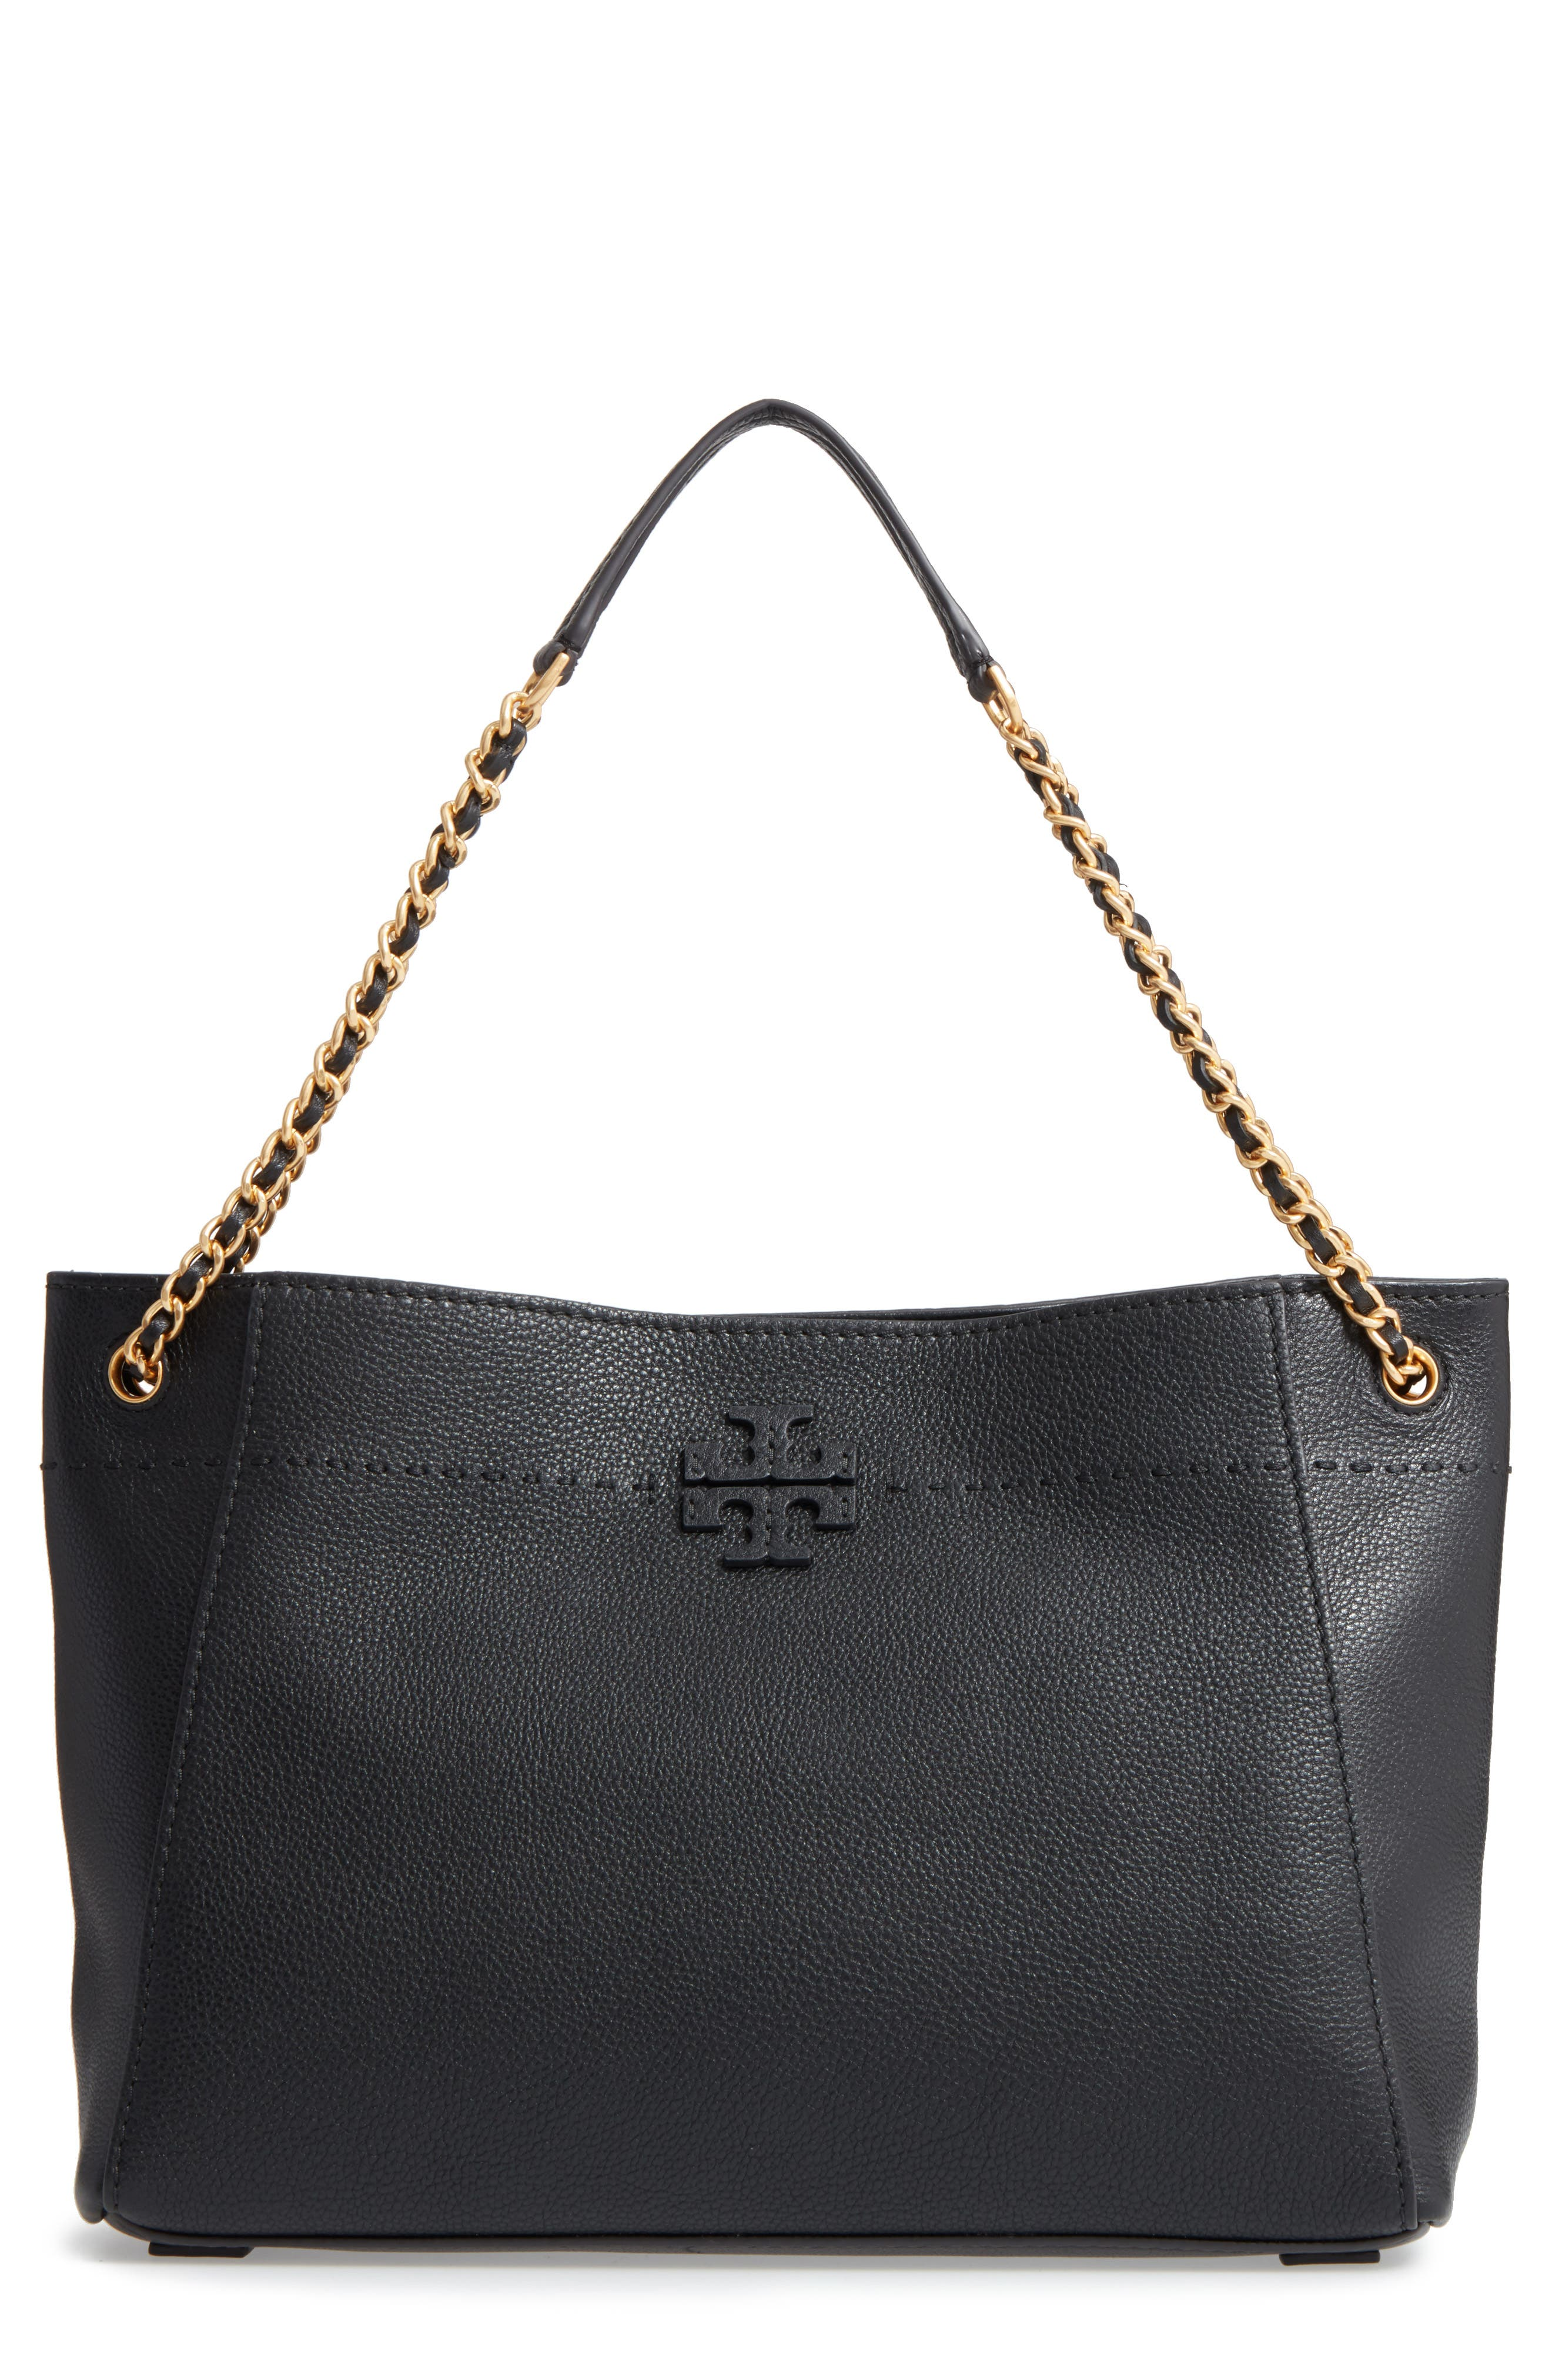 TORY BURCH,                             McGraw Slouchy Leather Shoulder Bag,                             Main thumbnail 1, color,                             001